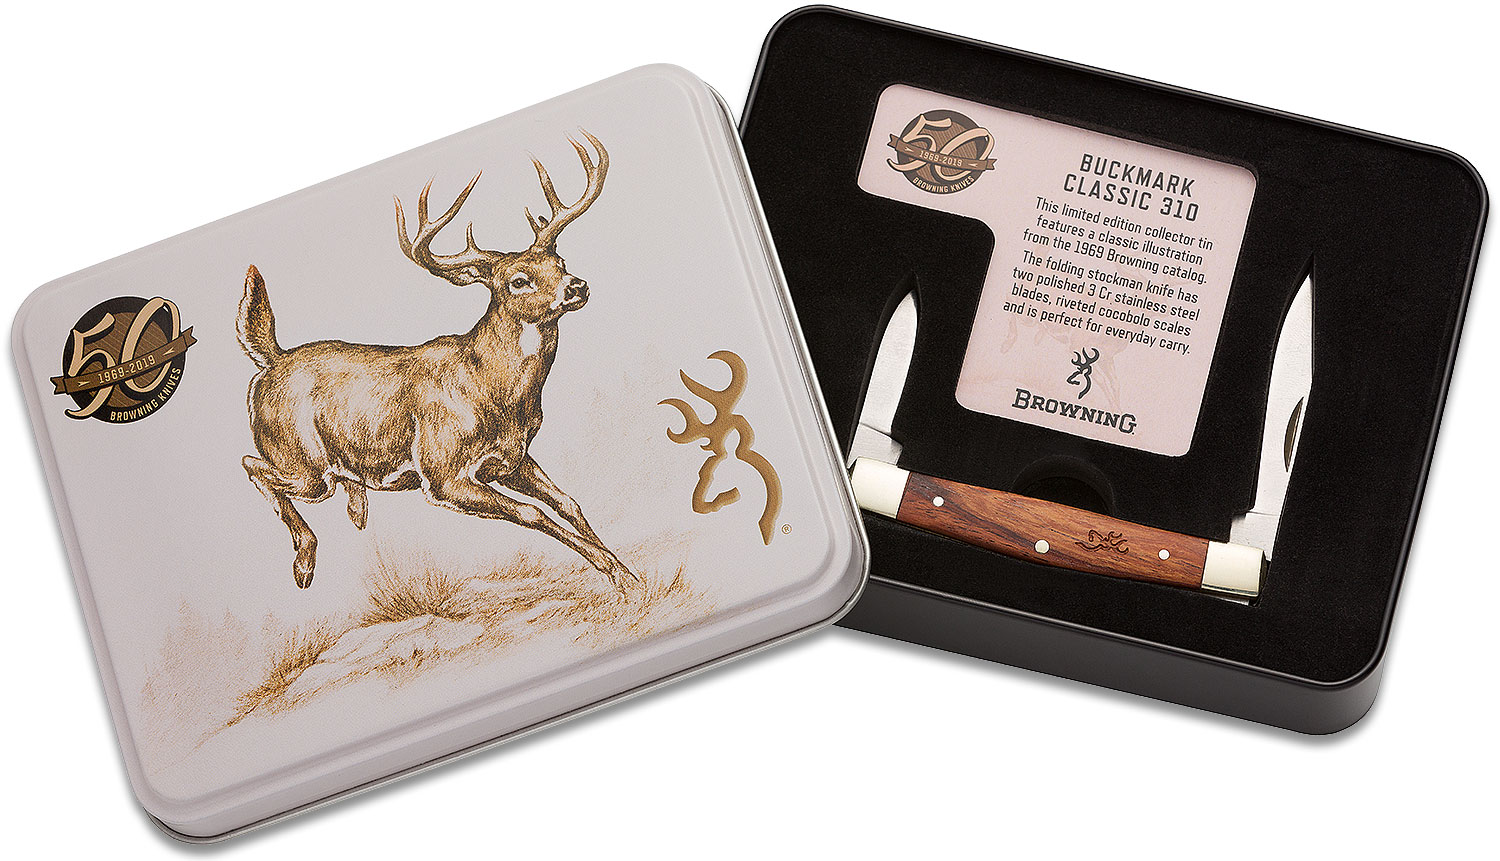 Browning 50th Anniversary Buckmark Classic 310 Stockman Knife 3.25 inch Closed, Cocobolo Wood Handles, Commemorative Gift Tin